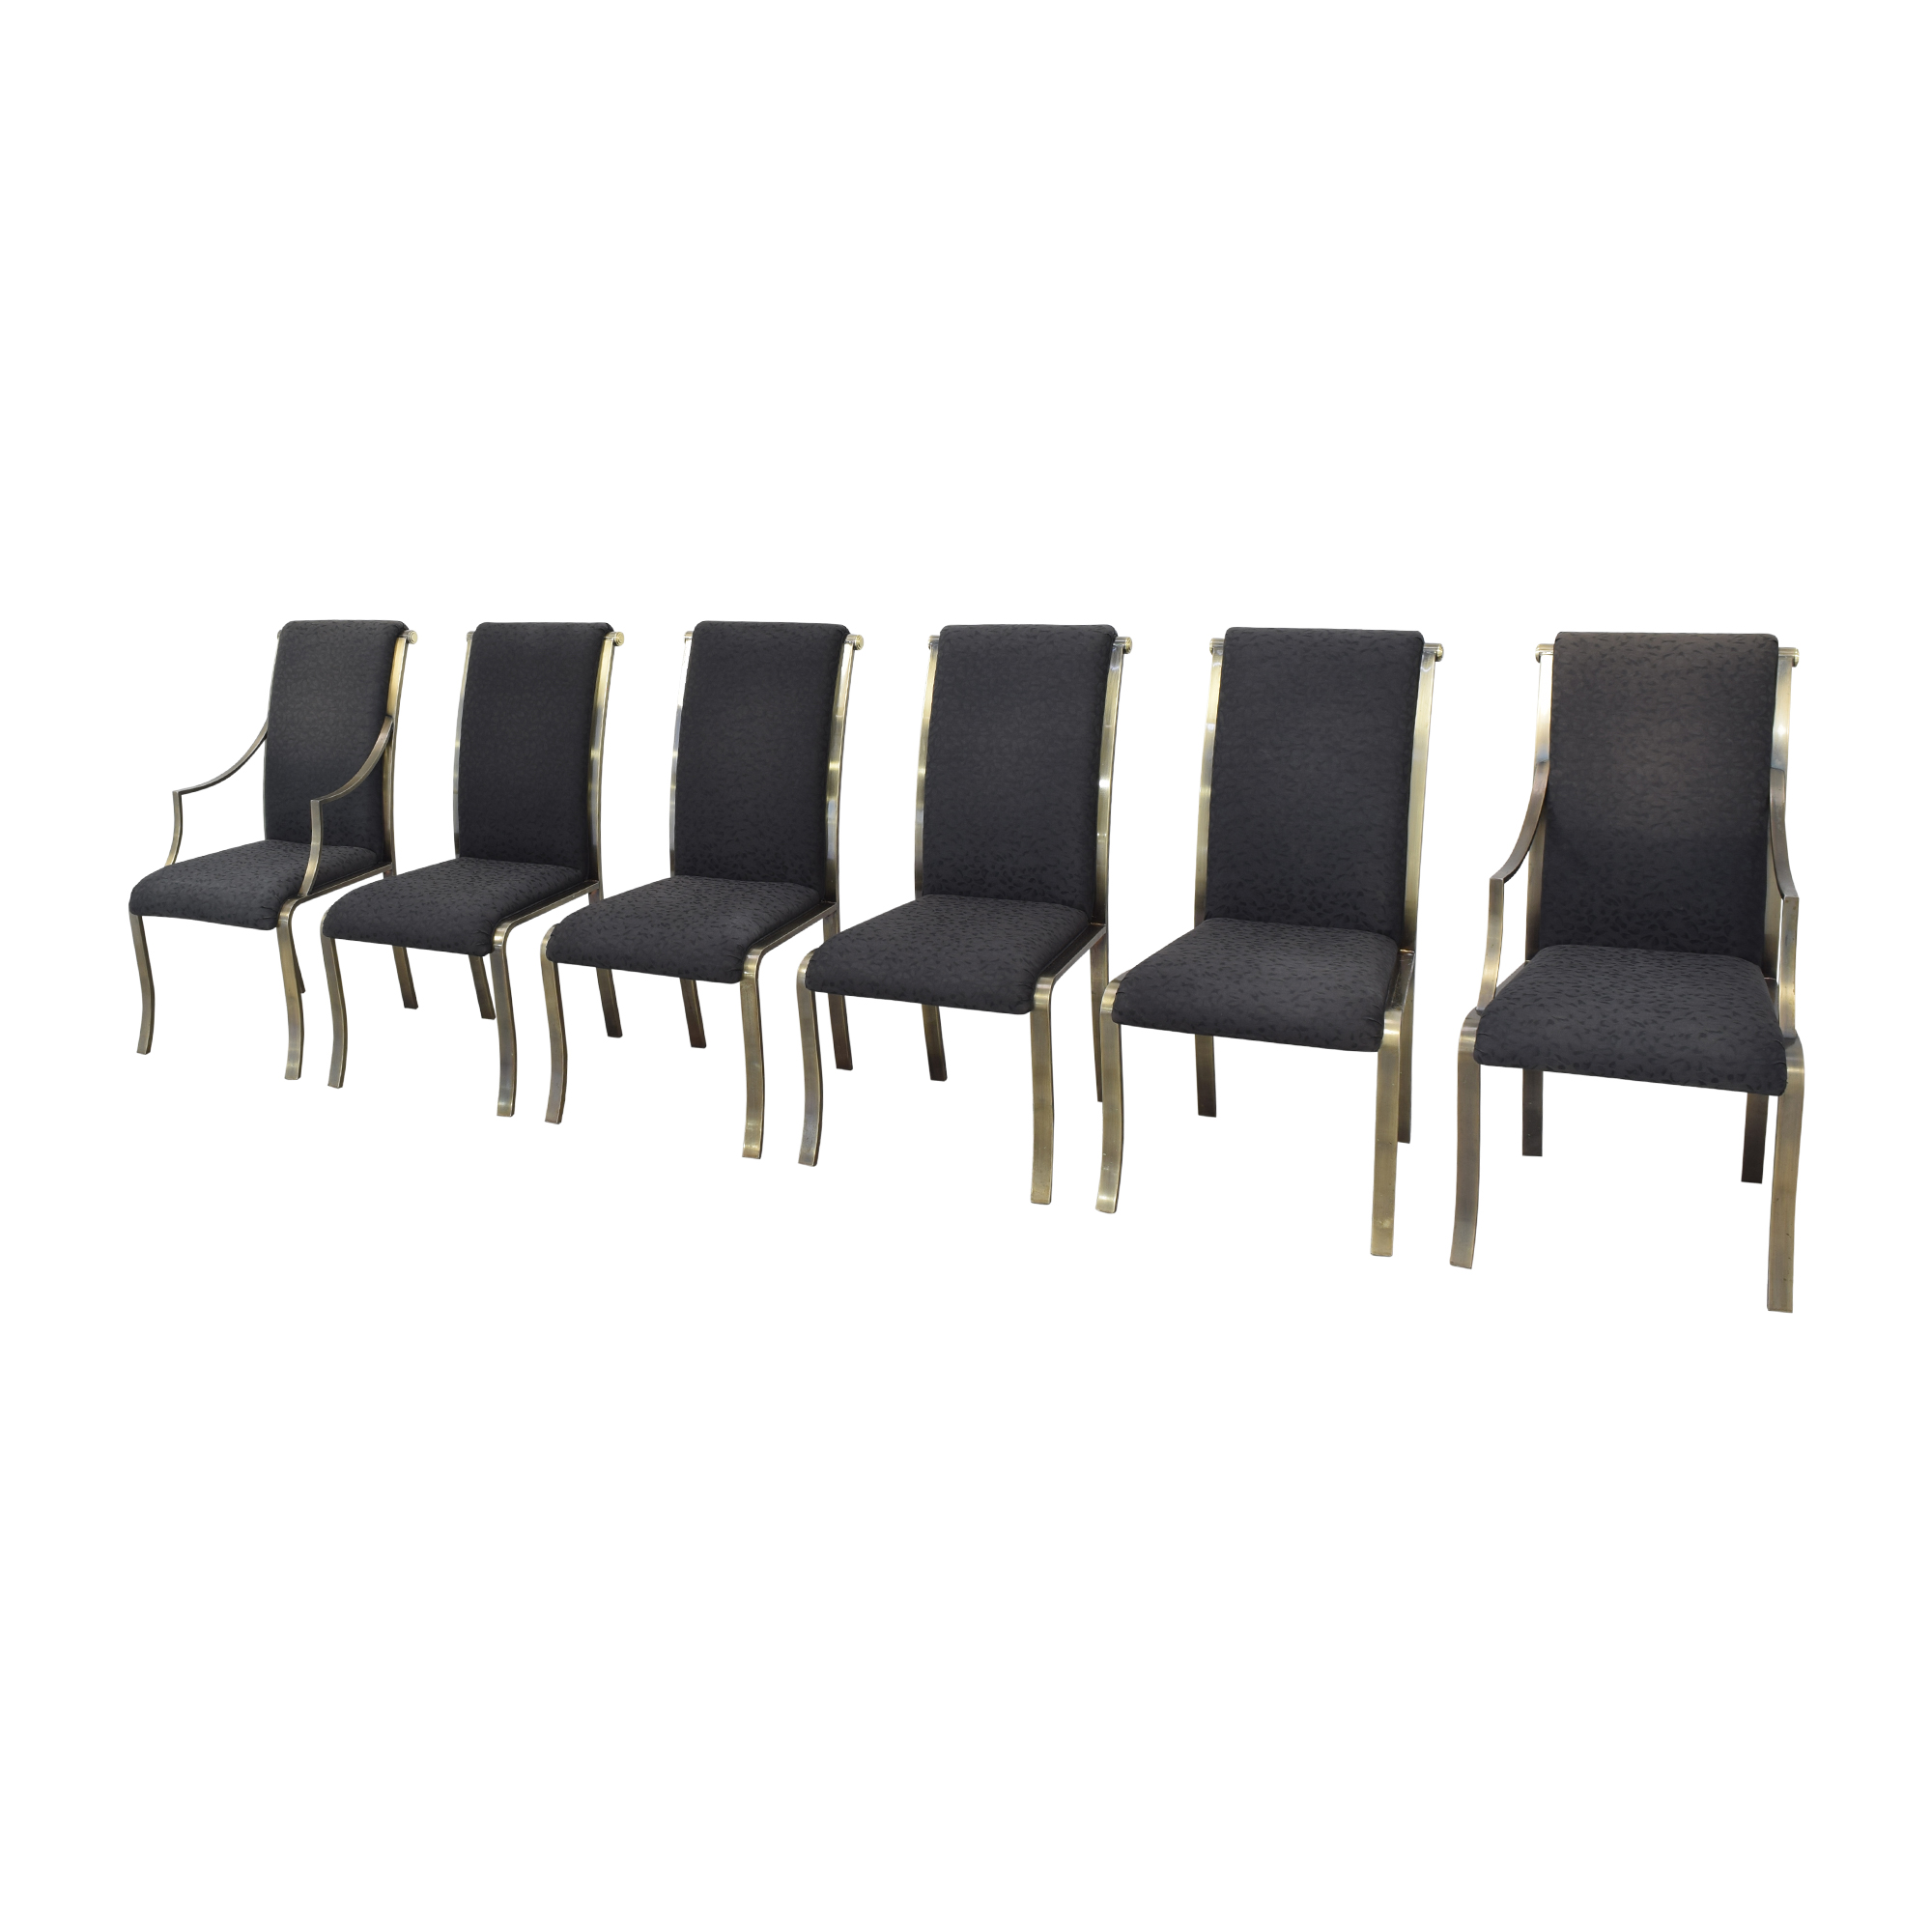 Design Institute America Design Institute America High Back Dining Chairs nyc